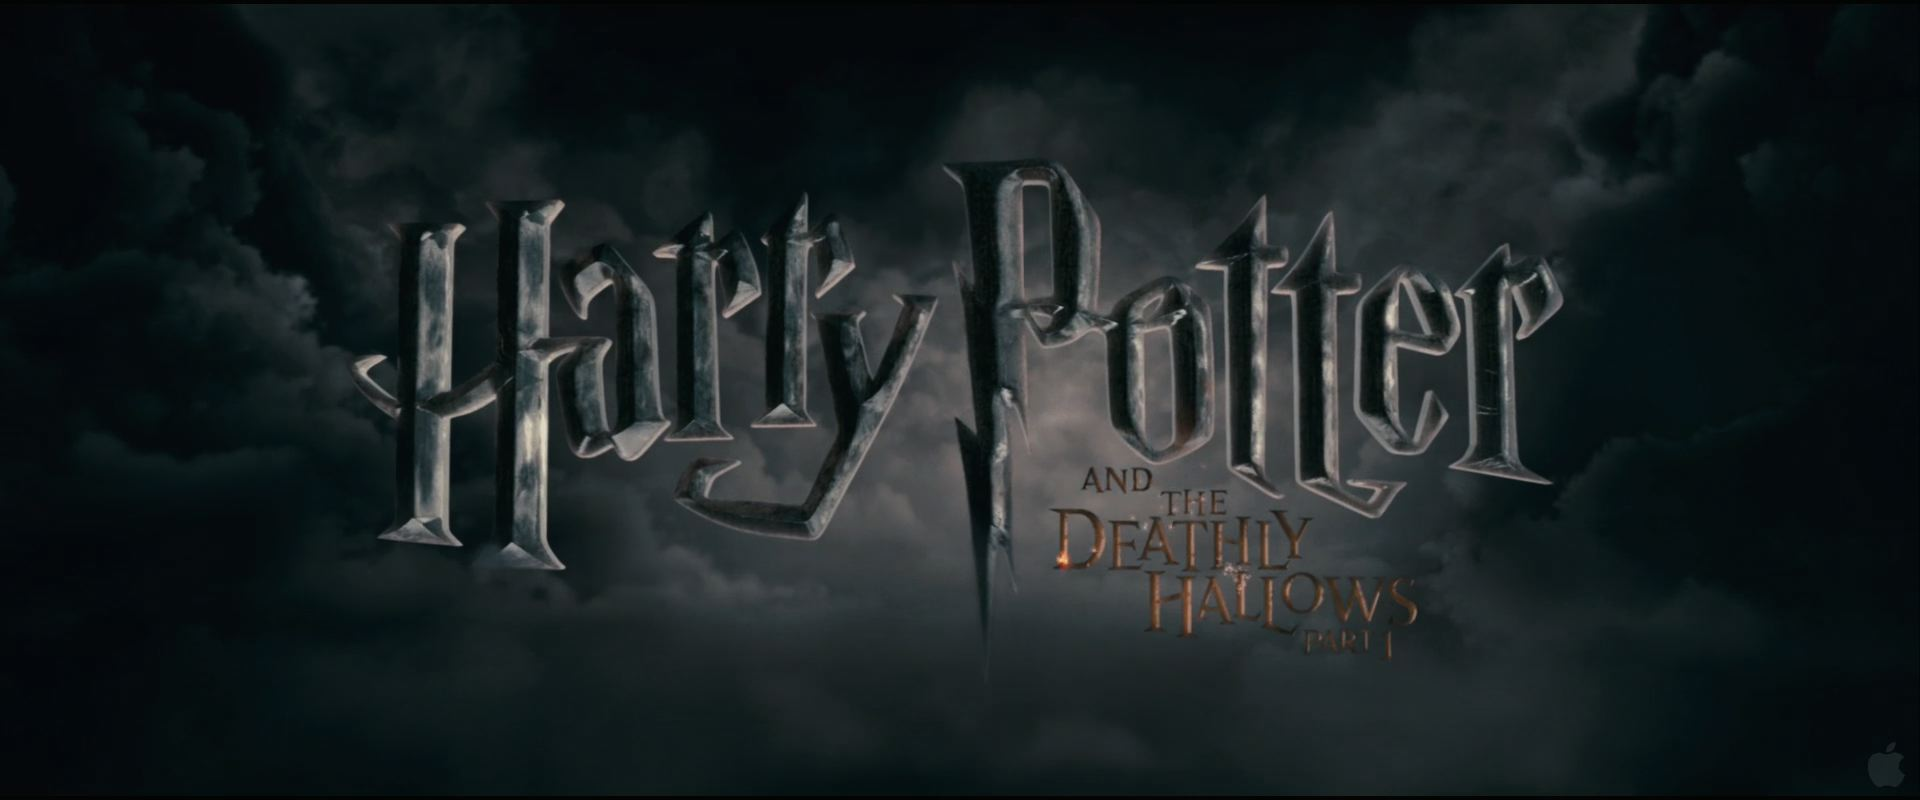 Harry Potter And The Deathly Hallows Movie Logo Desktop Wallpaper